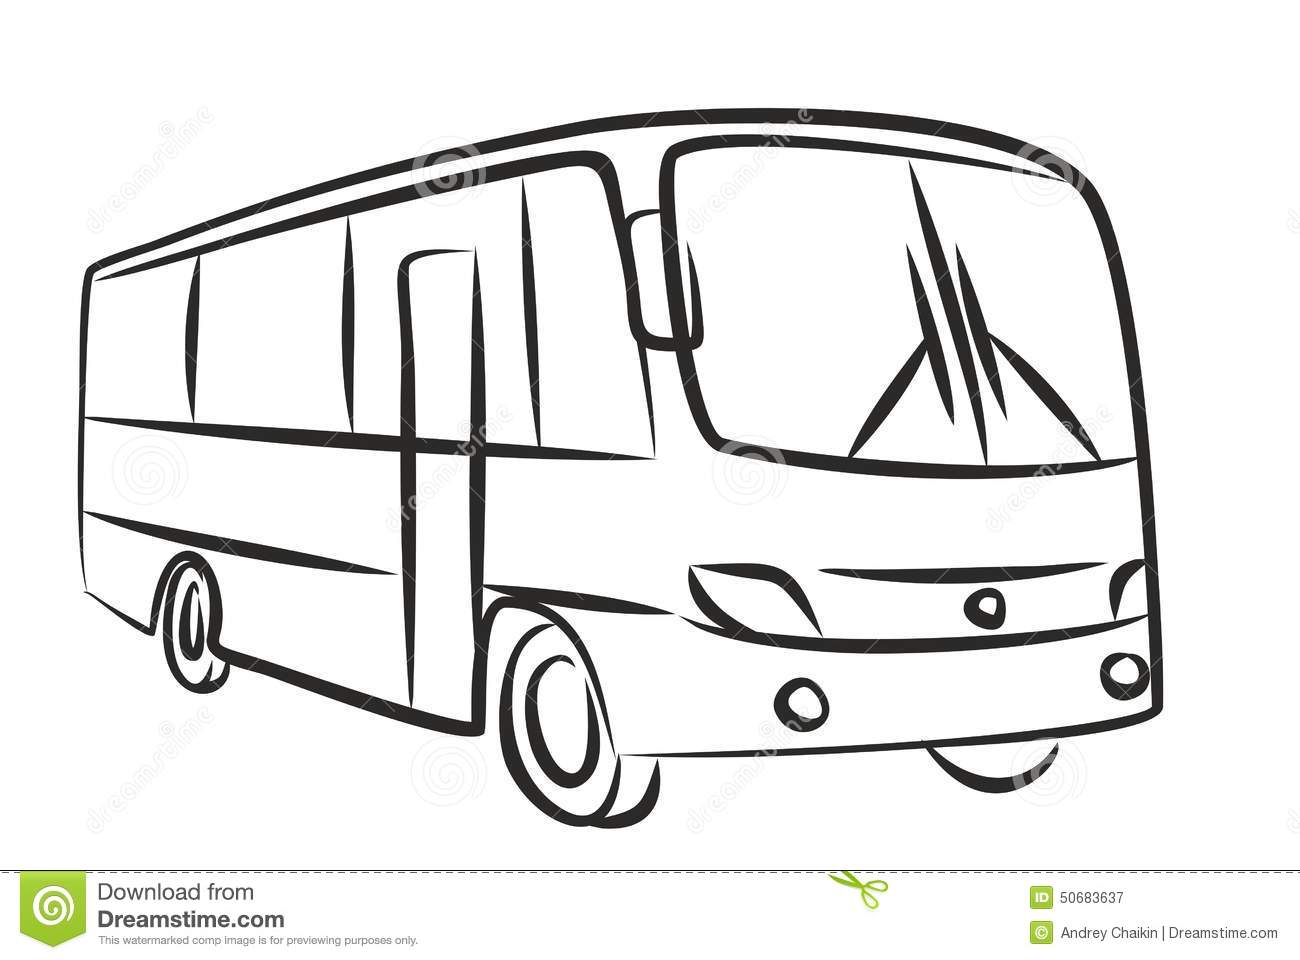 Bus Stock Vector - Image: 50683637